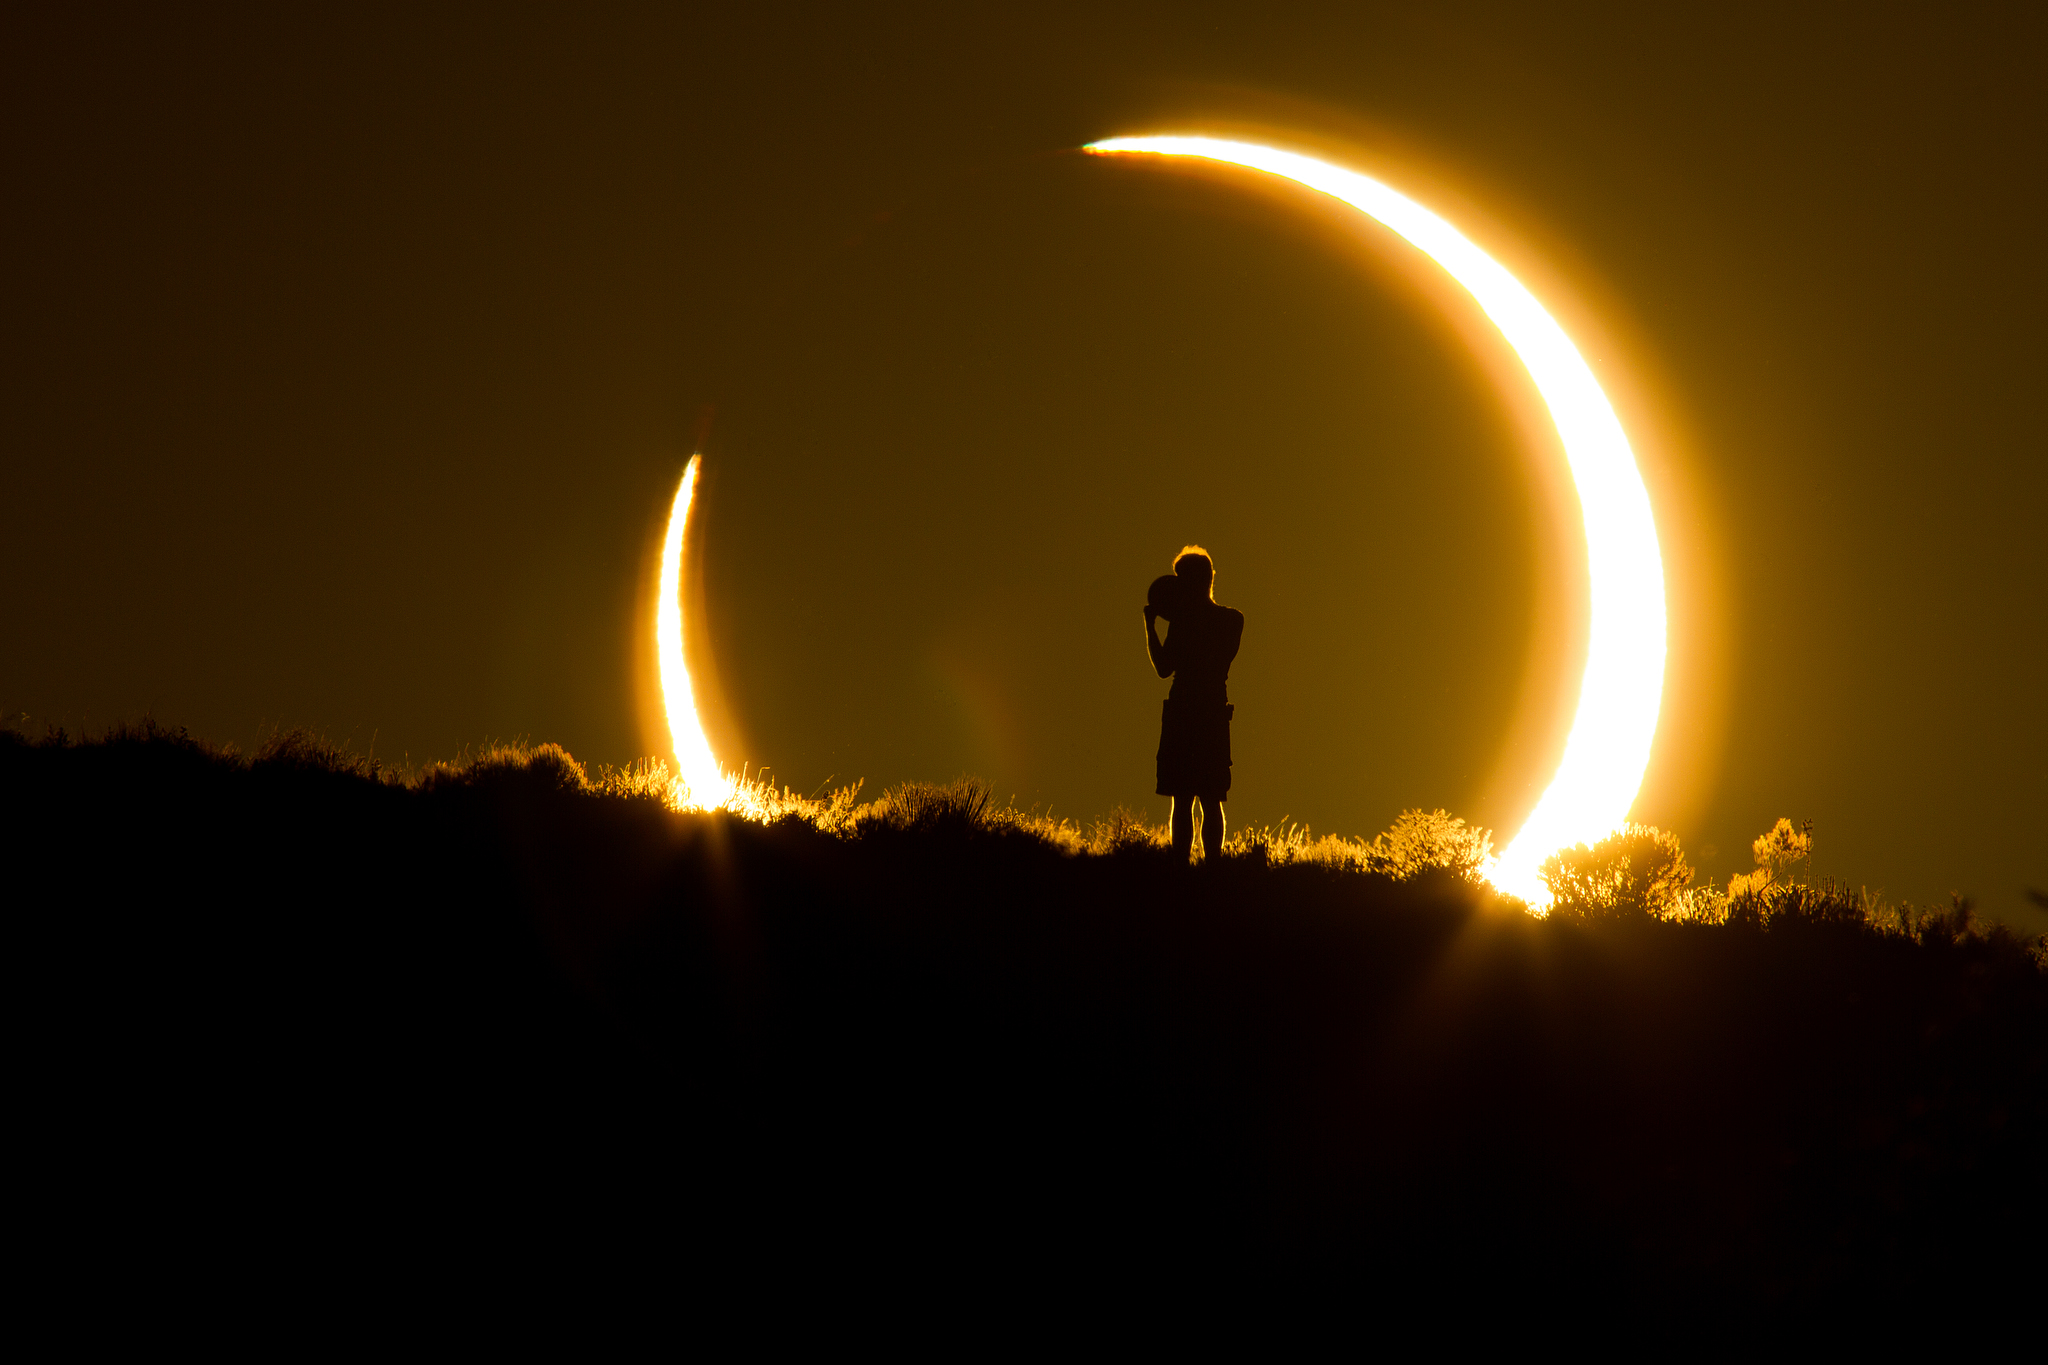 Total Solar Eclipse – July 2, 2019